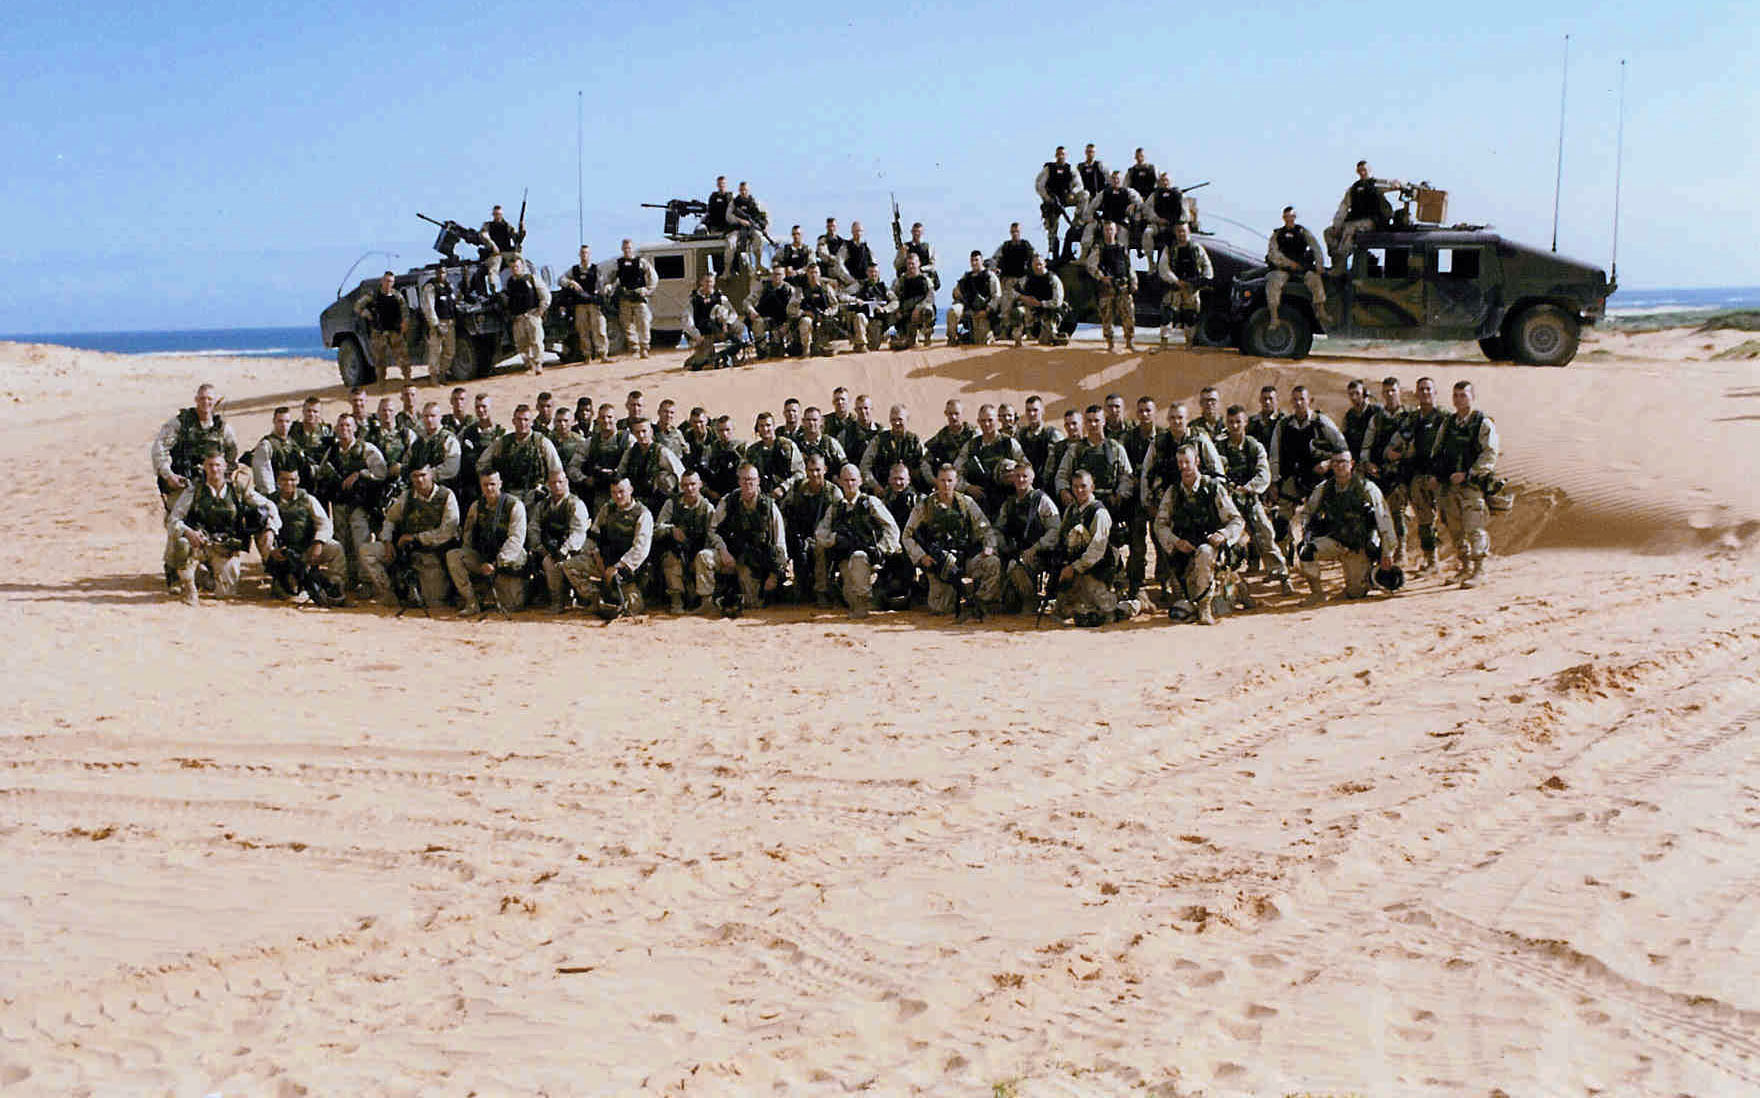 File:75th Ranger Regiment Bravo Company 3rd Batallion Somalia 1993.jpg